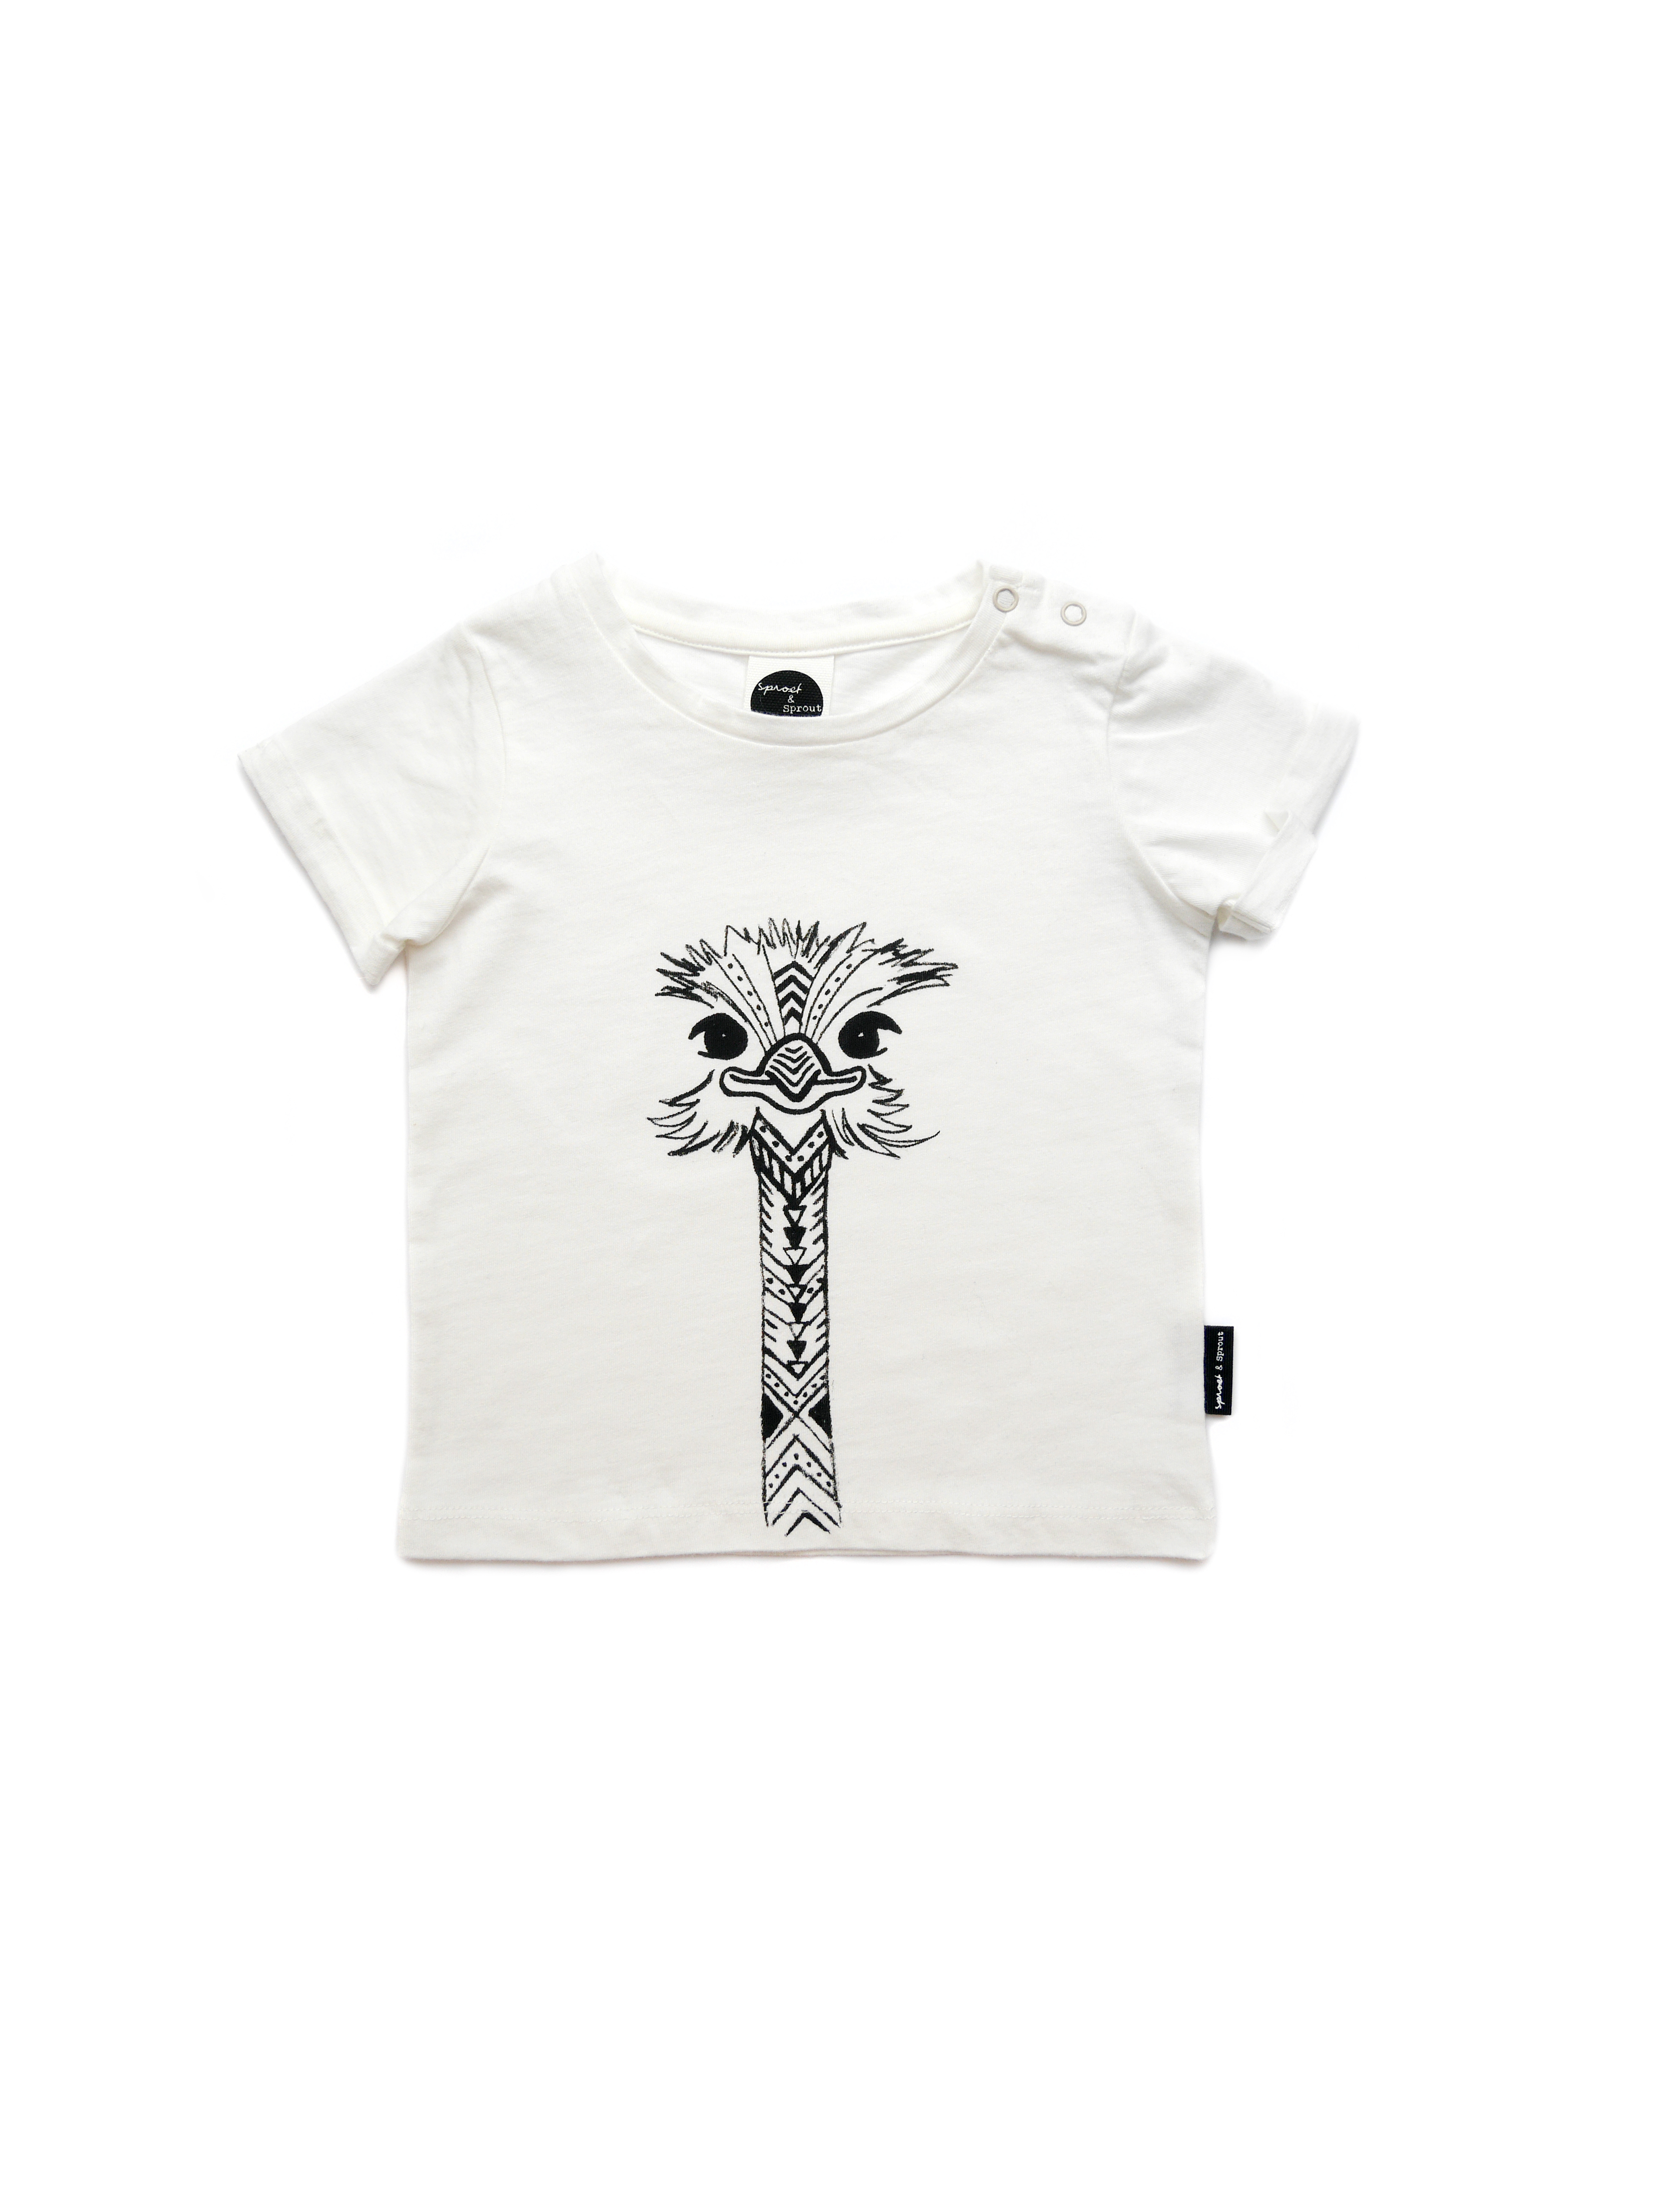 SPROET & SPROUT | T-SHIRT